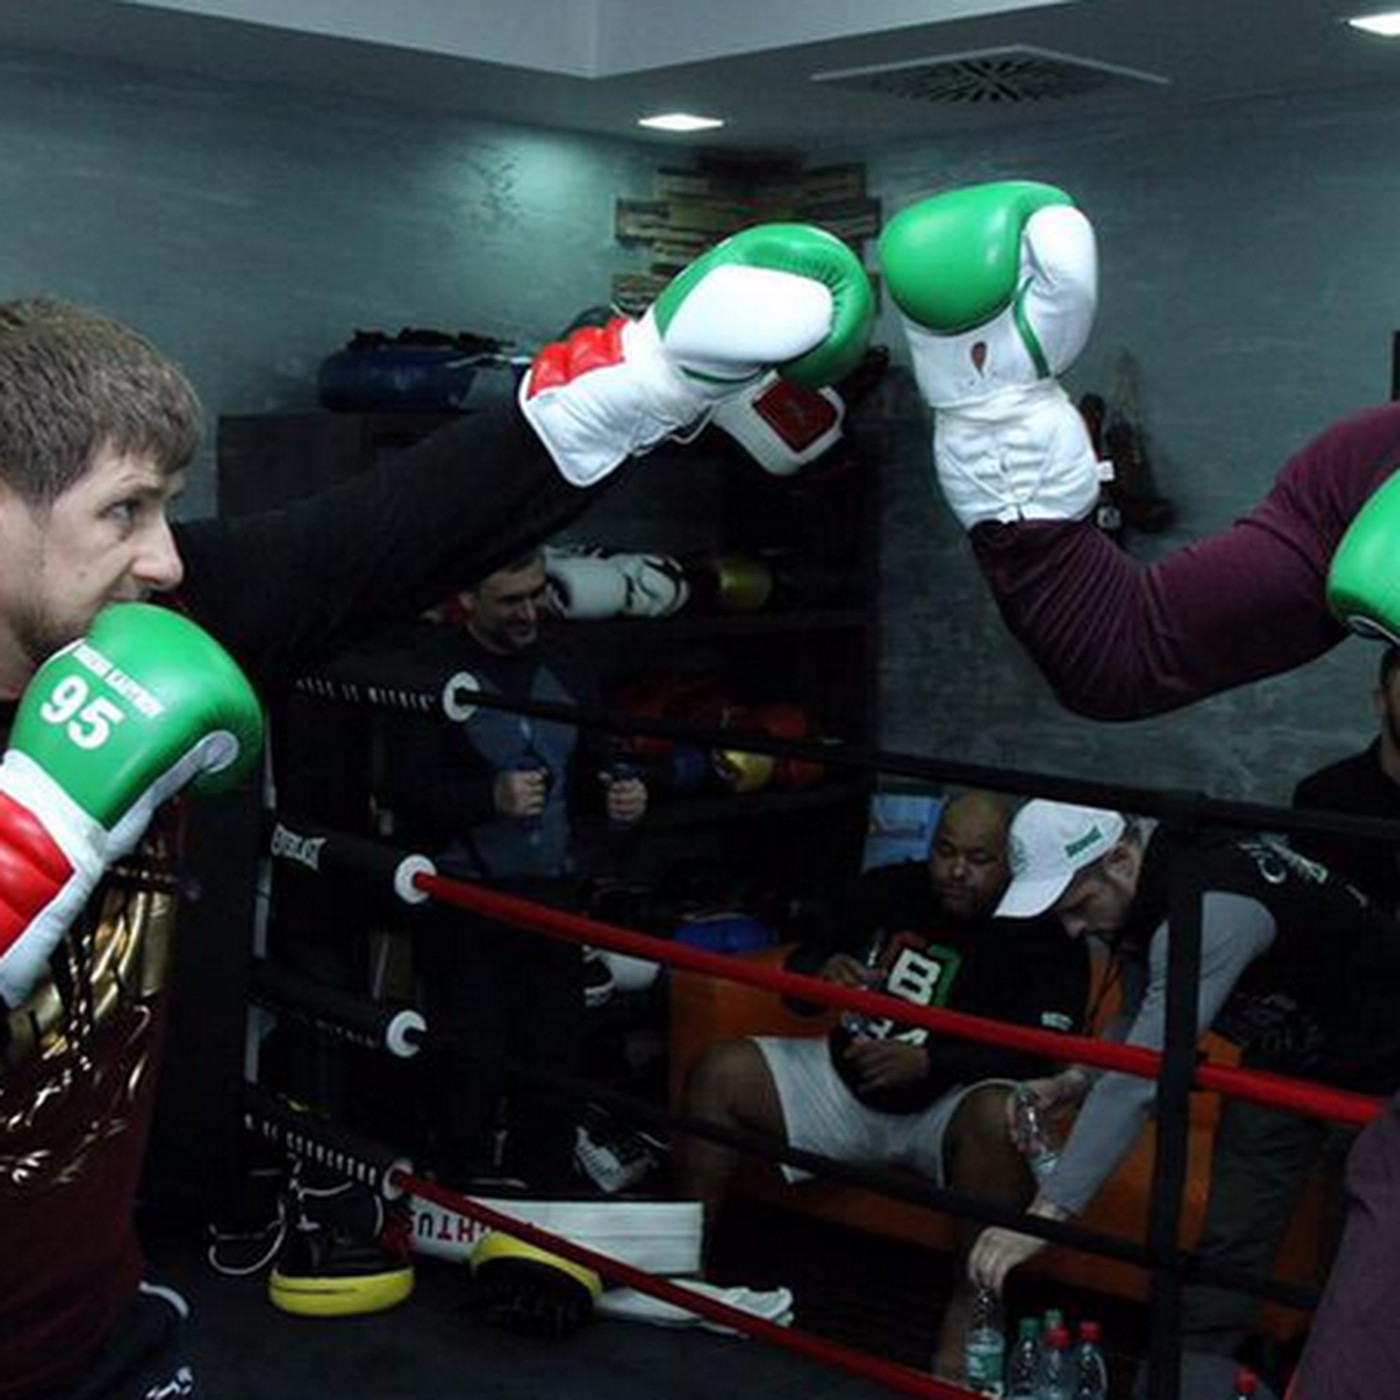 Chechen crime boss linked to Kadyrov opens boxing gym in